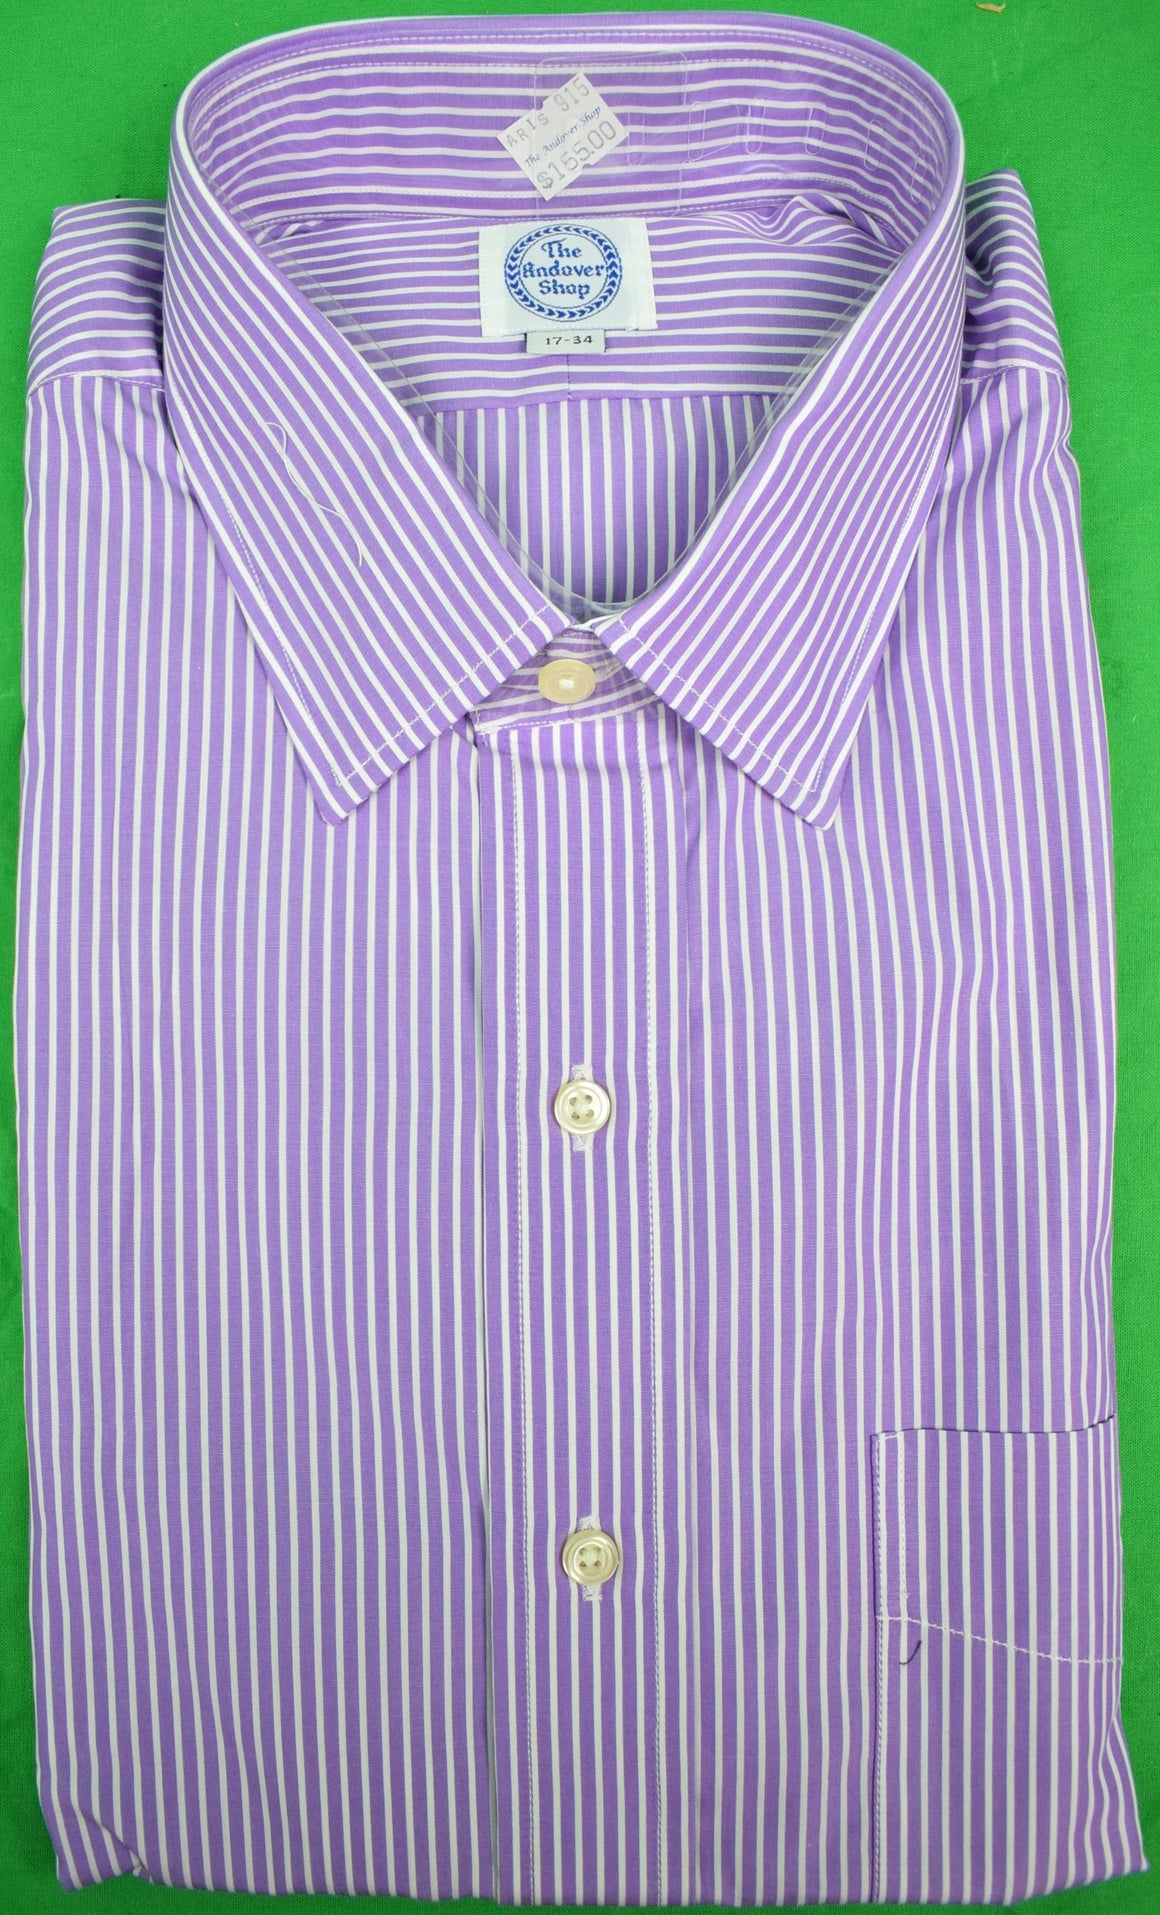 The Andover Shop Purple/ White Pinstripe Dress Shirt Sz: 17-34 (New w/ Tag!)